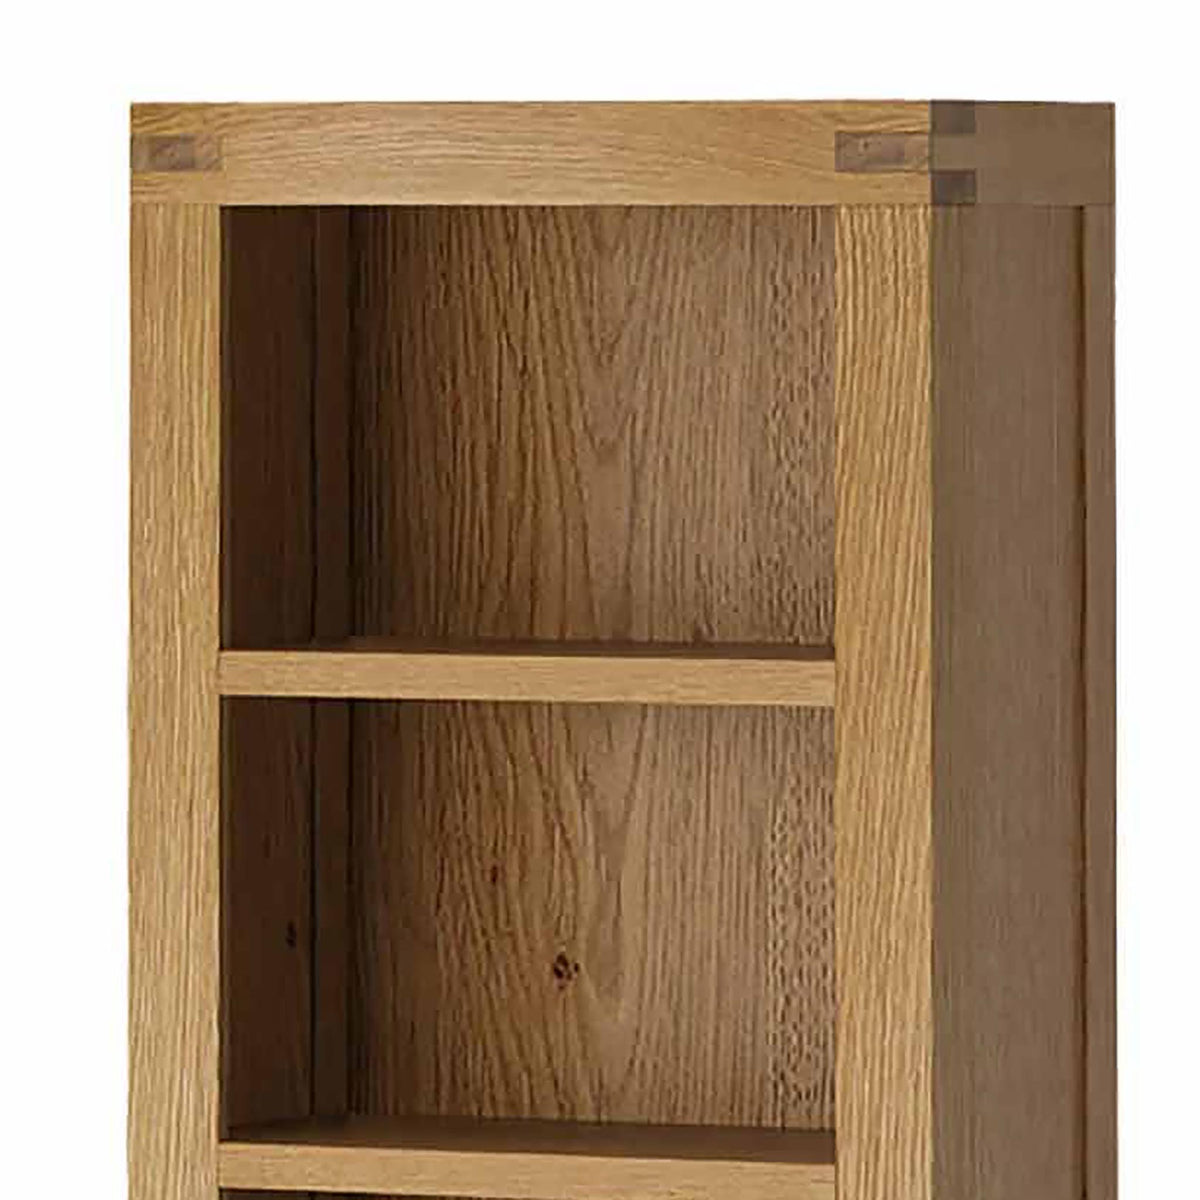 The Abbey Grande Tall Narrow Oak Bookcase - Close Up of Top of Bookcase